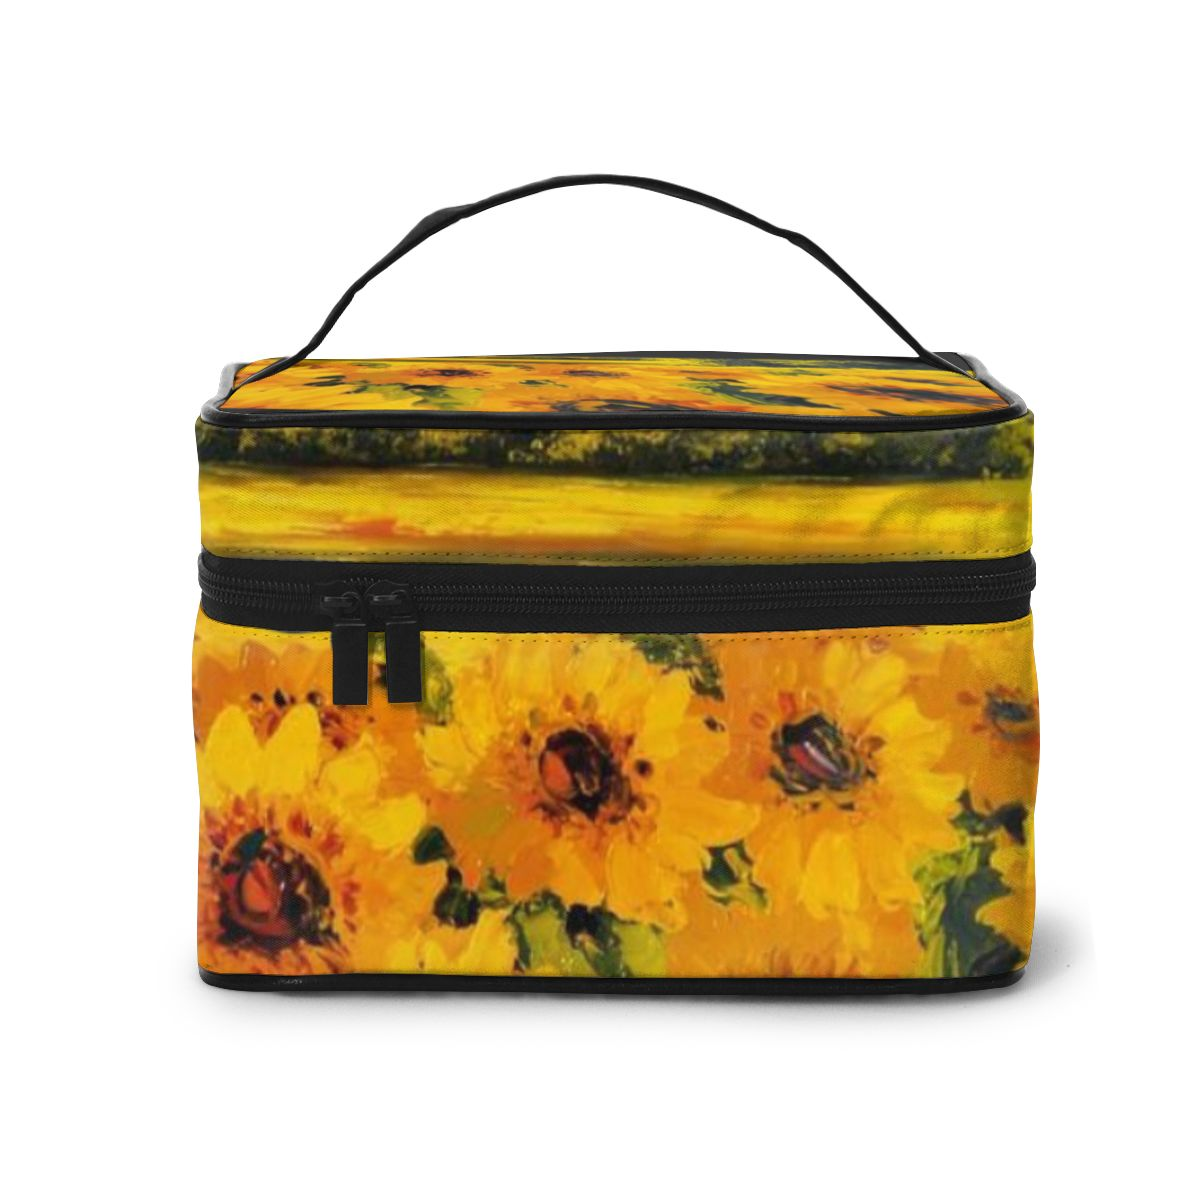 NOISYDESIGNS Women Travel Comestic Box Sunflowers Printing Makeup Bags Multifunction Beauty Case Neceser Maquillaje Mujer